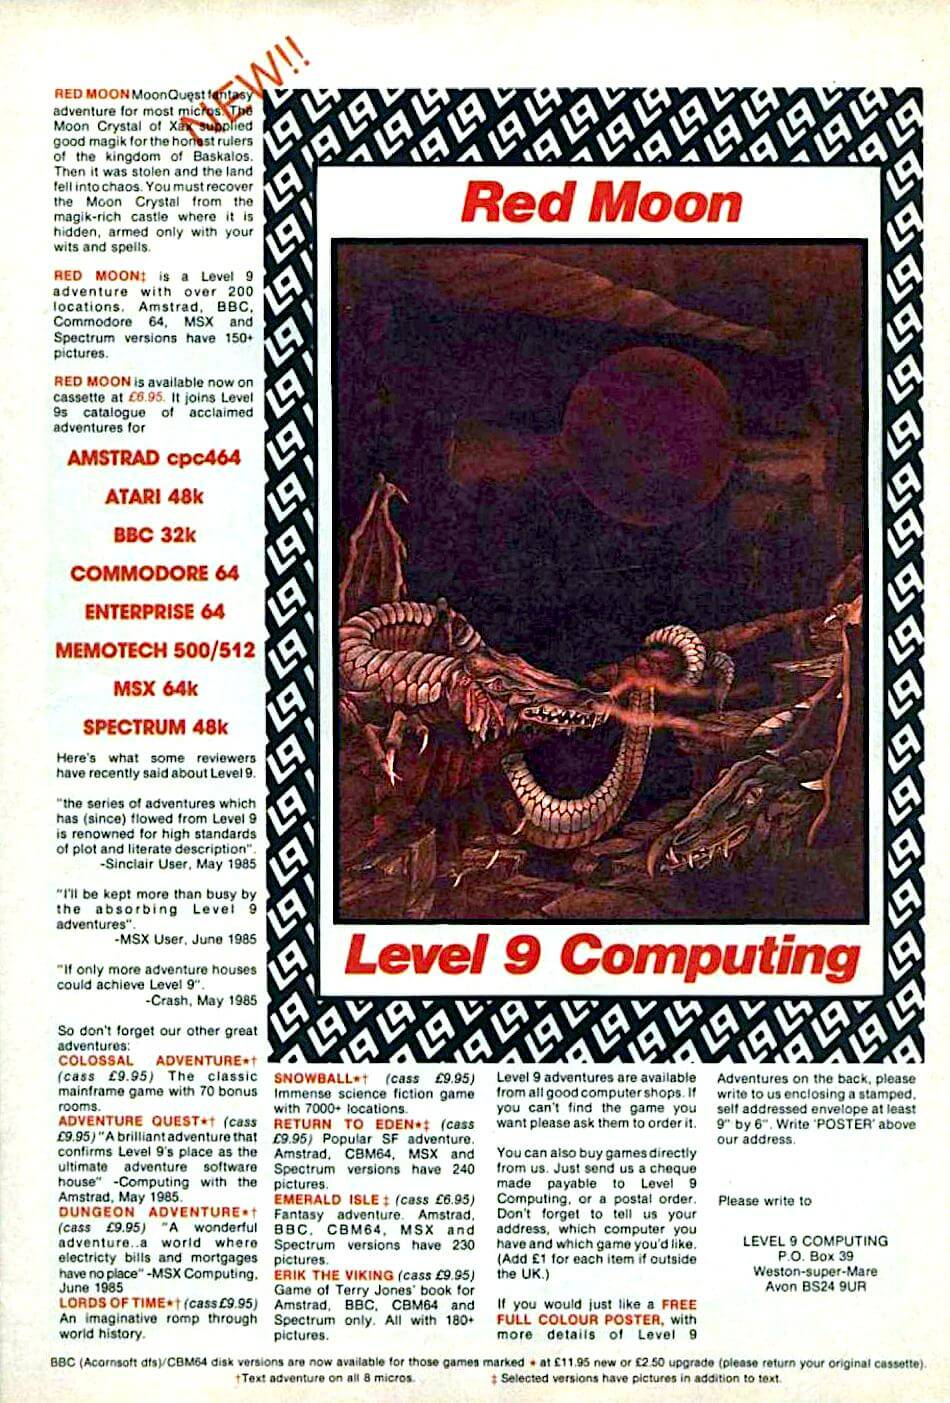 **Description**   The Red Moon Crystal is the only source of Magik in the land, and stabilizes the forces of the world. This crystal has been stolen and as a result, the land has fallen into chaos. A single powerful magician is sent to rescue the Crystal from the castle where it's hidden.  Red Moon is an graphical interactive fiction game. Players assume the role of the wizard on his quest to recover the crystal. They will have the use of many weapons and a dozen magical spells. Combat is a key element of the game: both the magician and enemy opponents have hit points, in the style of RPGs. Spellcasting requires certain objects to be col